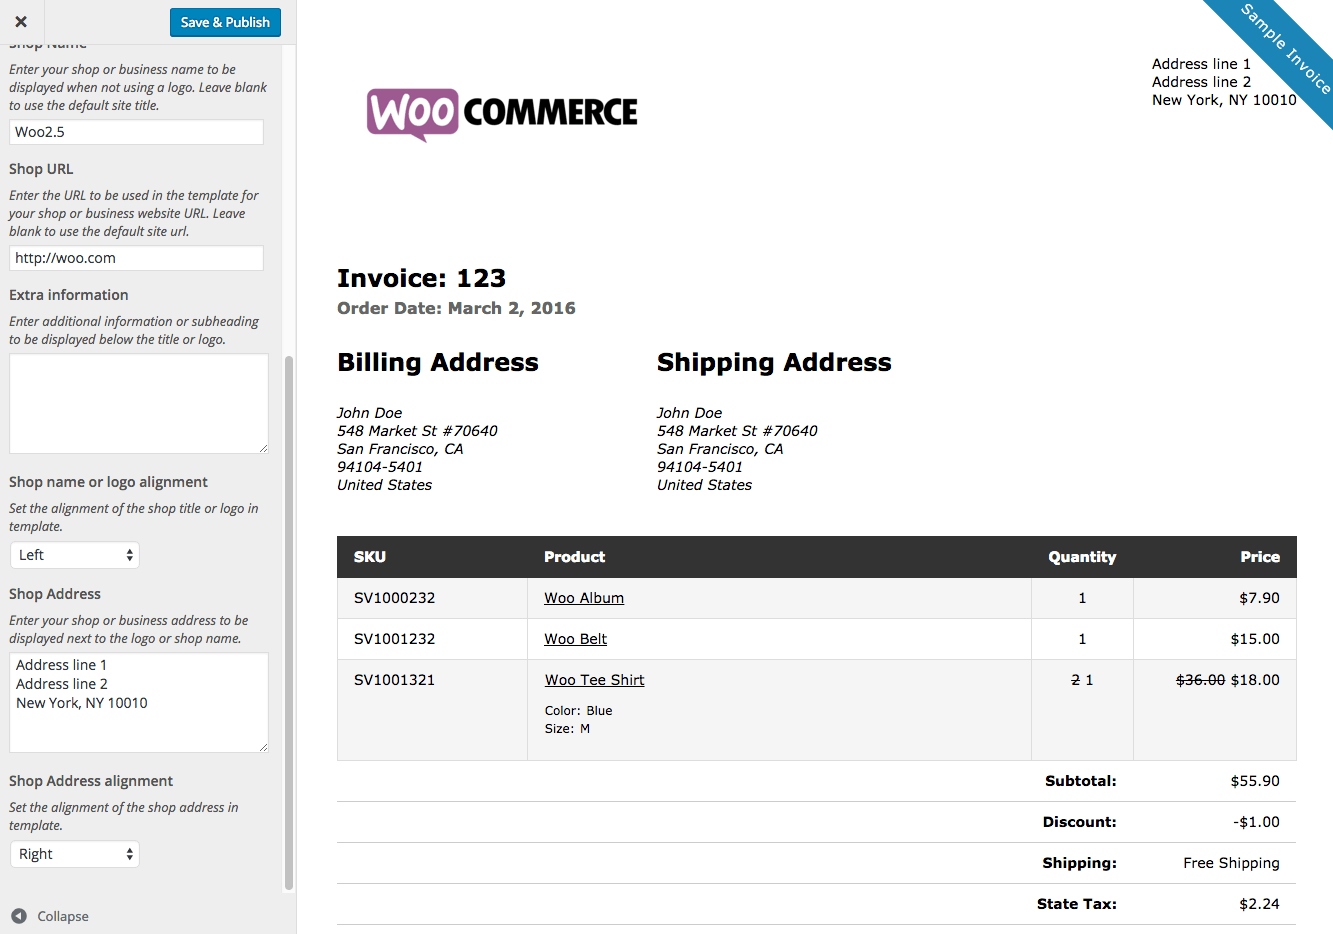 Usdgus  Sweet Print Invoices Amp Packing Lists  Woocommerce With Licious Woocommerce Print Invoices  Packing Lists Customizer With Amazing Best Invoice Software For Small Business Also Invoice In Word In Addition New Car Dealer Invoice And Invoice To As Well As Invoice Database Additionally Mobile Invoice Printer From Woocommercecom With Usdgus  Licious Print Invoices Amp Packing Lists  Woocommerce With Amazing Woocommerce Print Invoices  Packing Lists Customizer And Sweet Best Invoice Software For Small Business Also Invoice In Word In Addition New Car Dealer Invoice From Woocommercecom